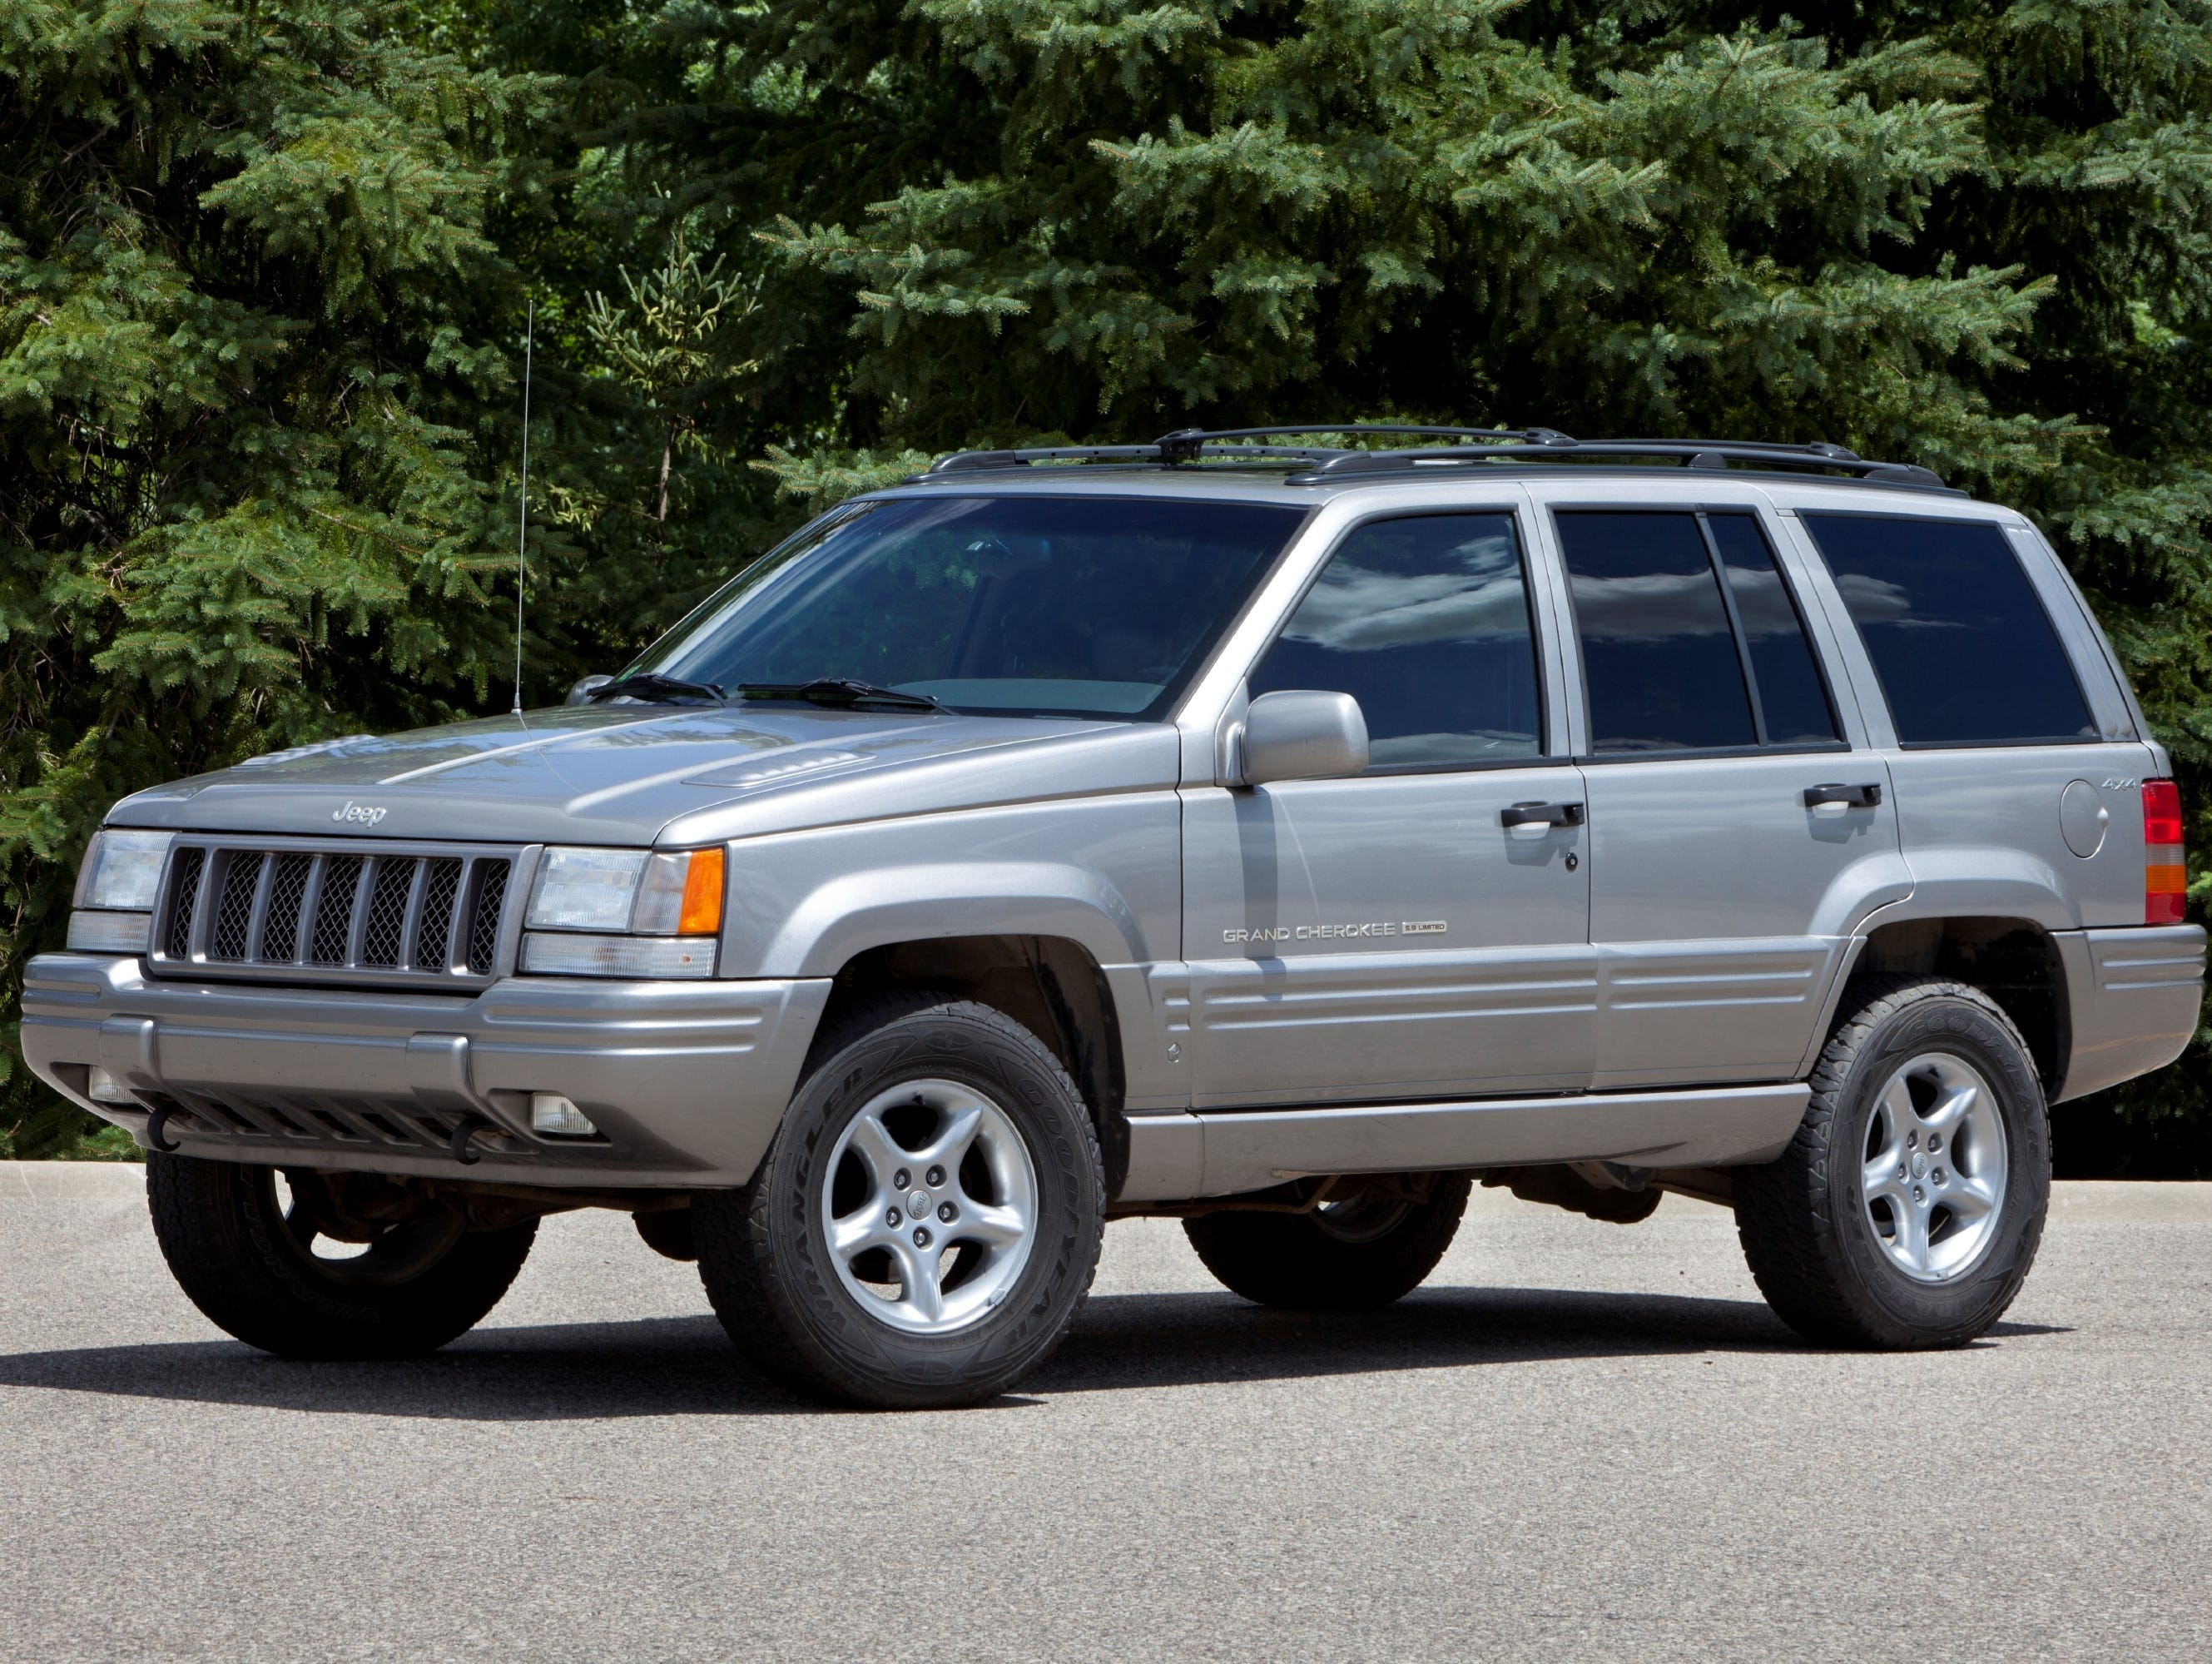 Amazing Chrysler Has Agreed To Recall 1.56 Million Jeep Grand Cherokee And Liberty  Models, Including This